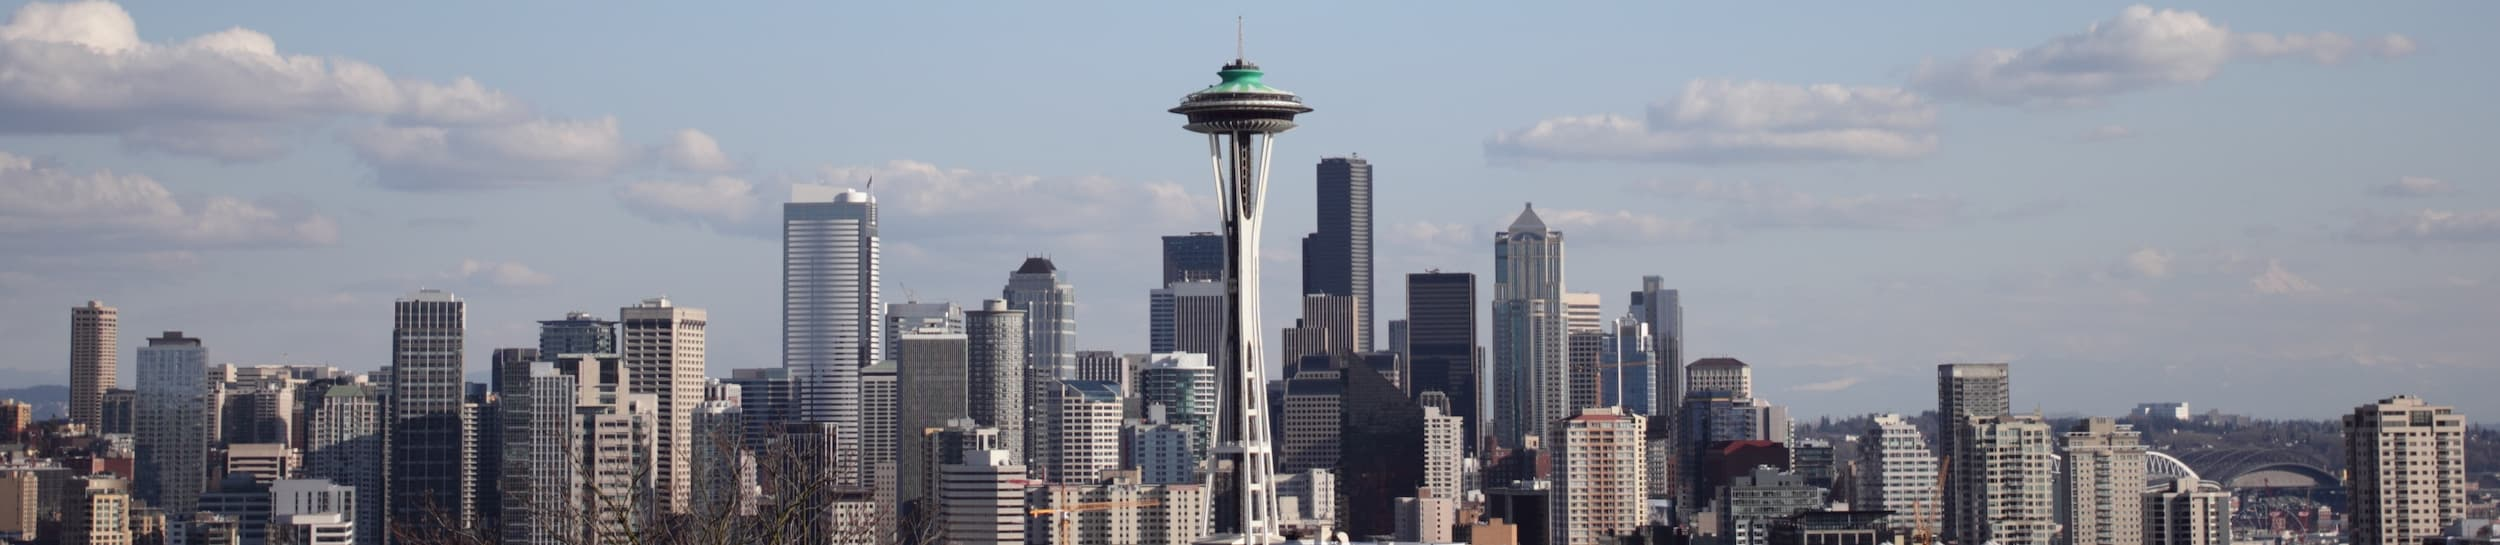 Pictured: skyline of Seattle